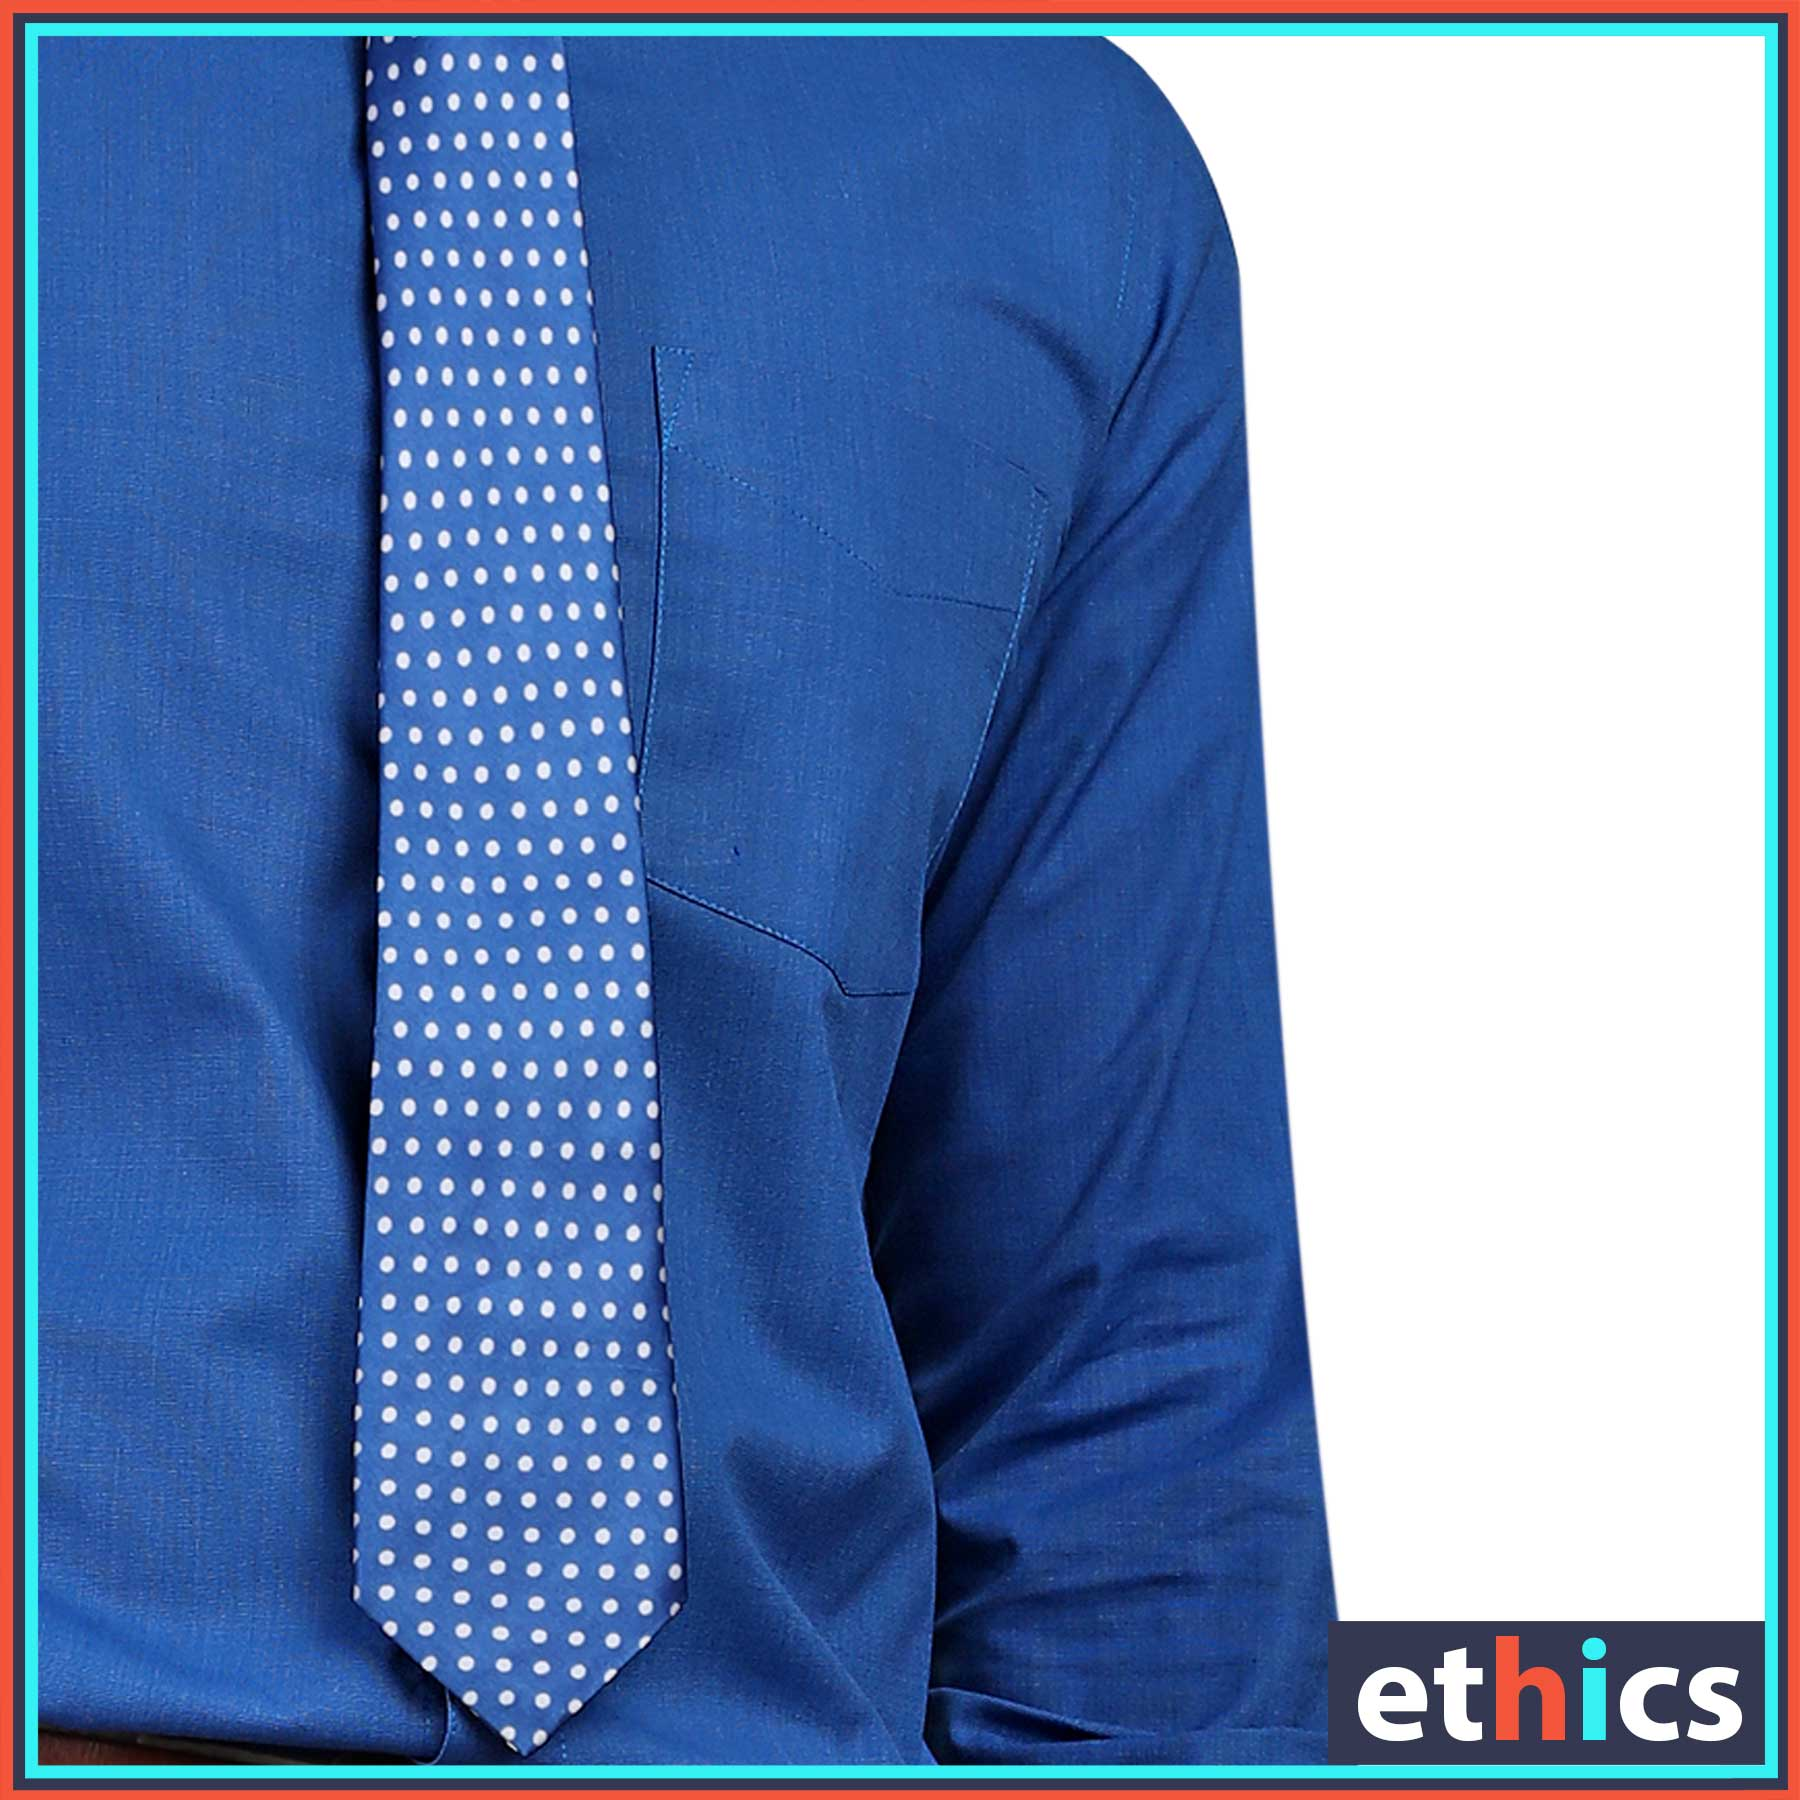 Solid Blue Mens Formal Uniform Shirt for Corporate Uniforms BF-81303